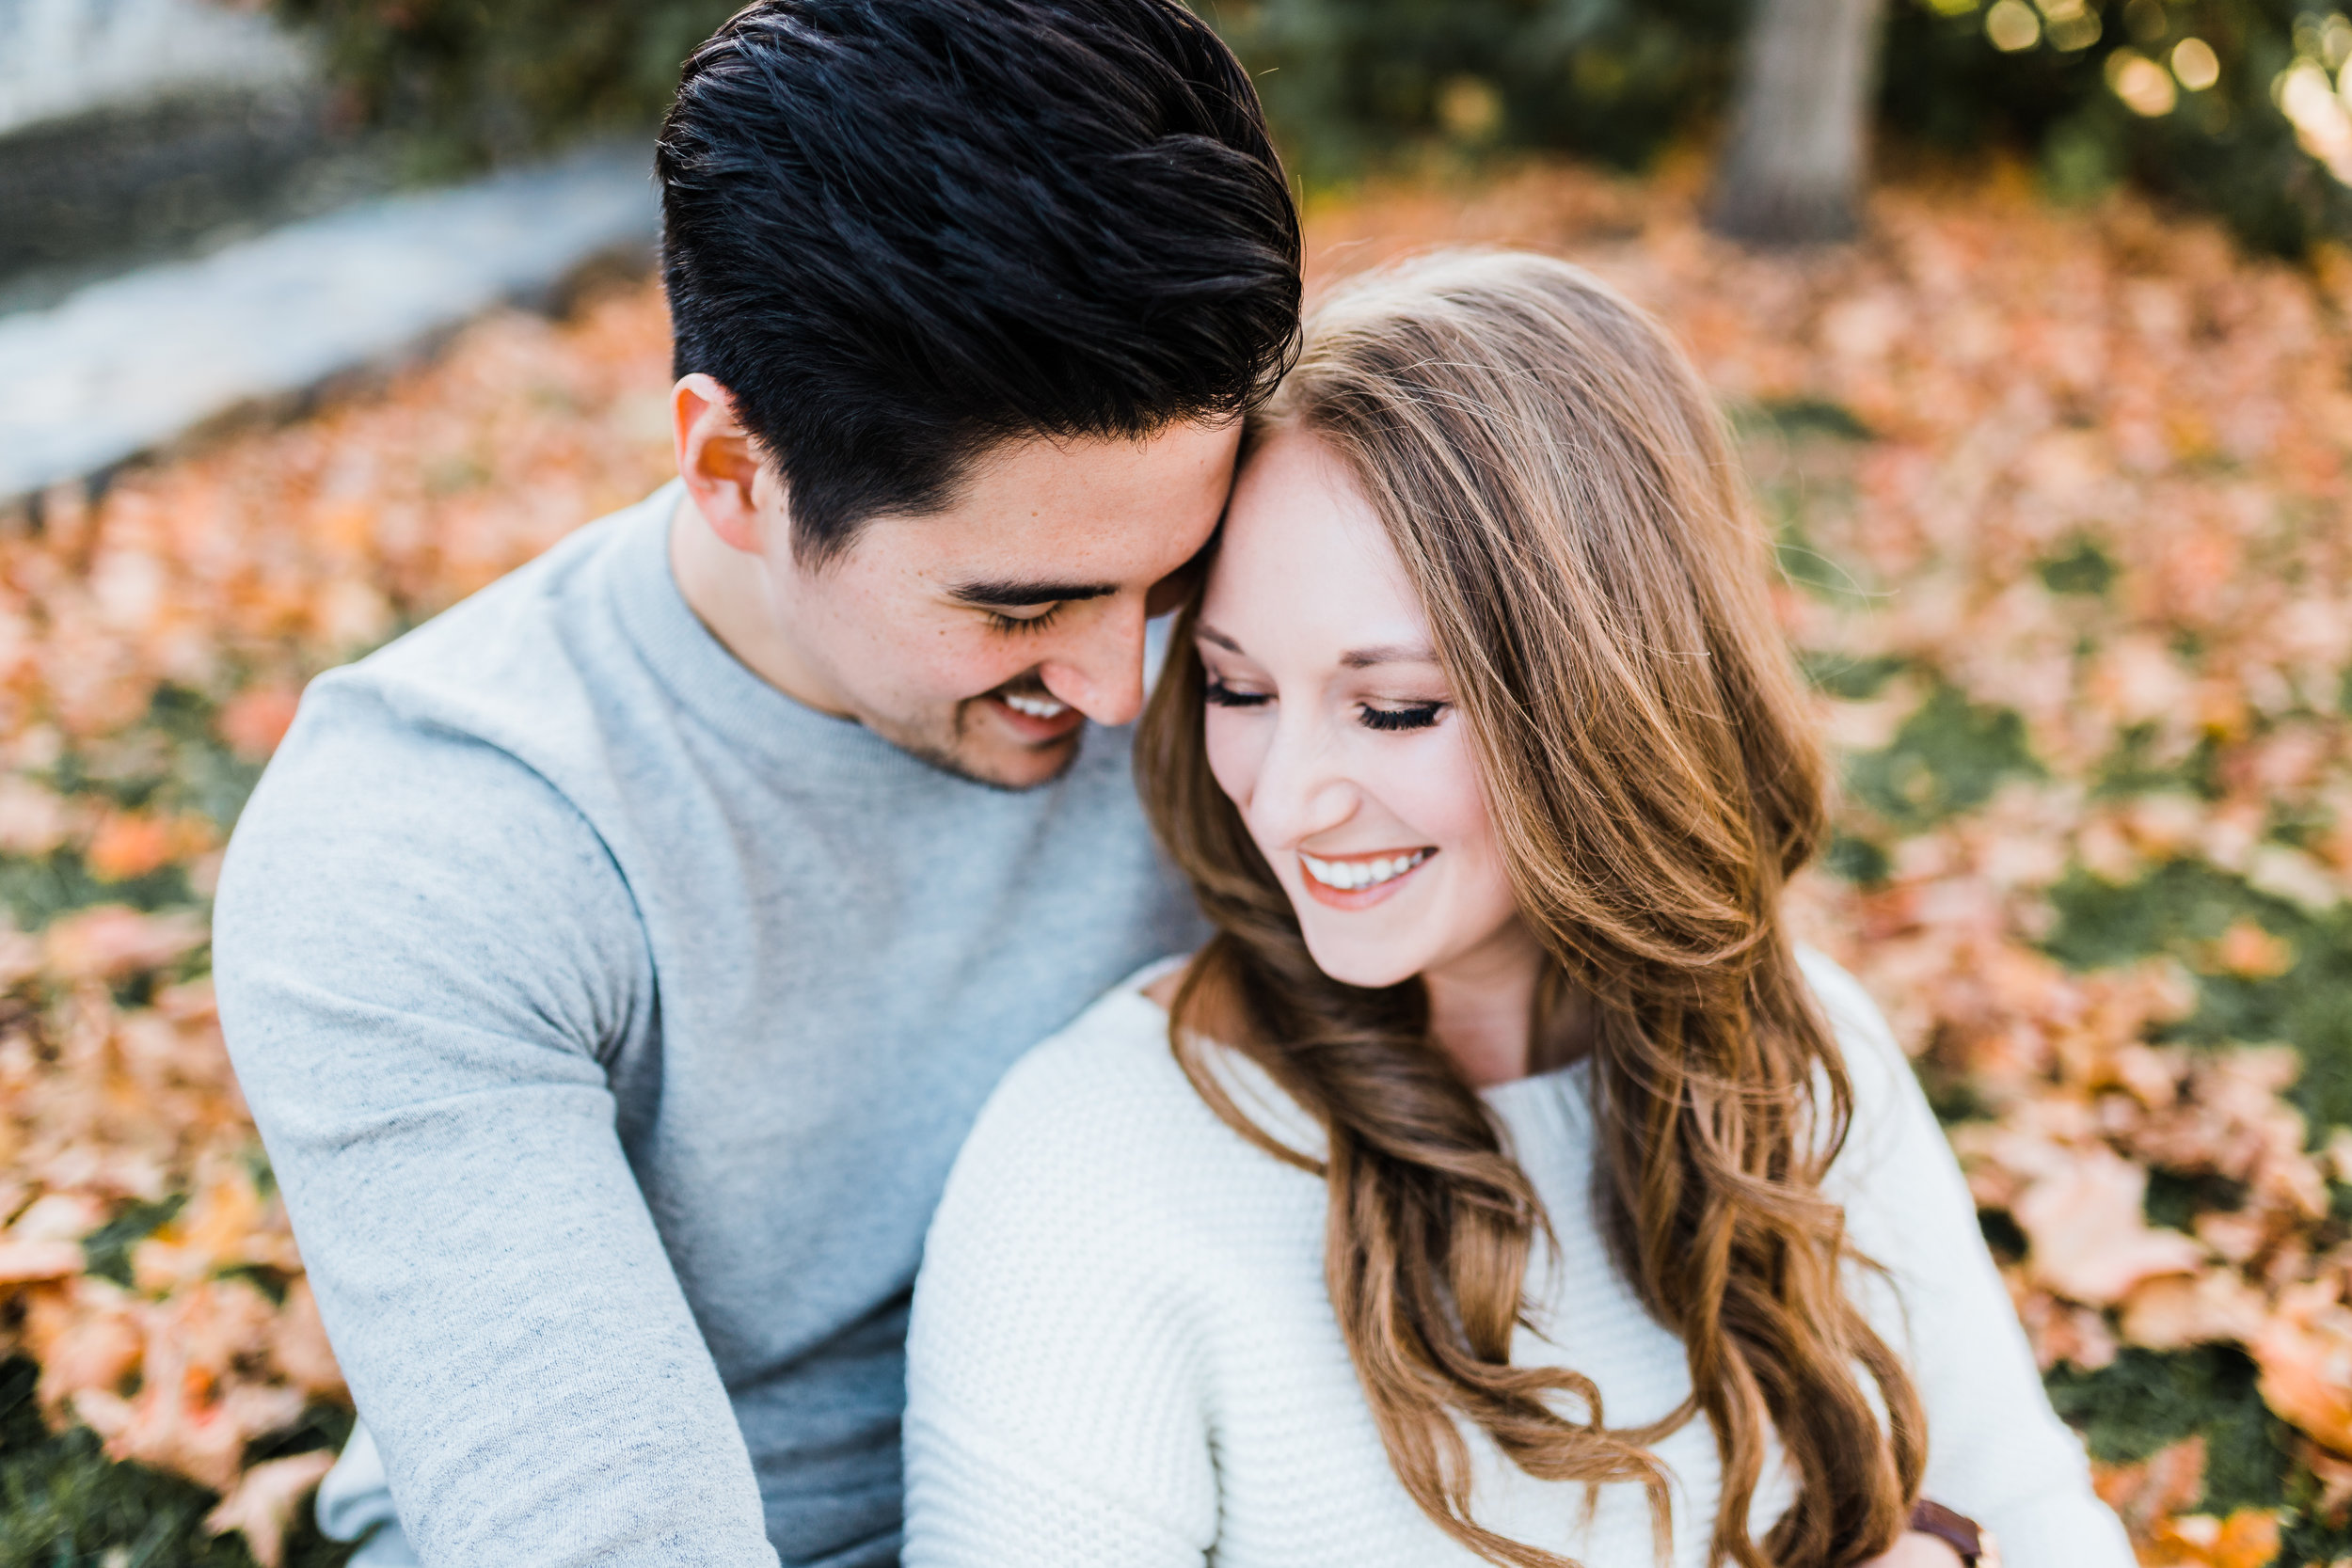 husband and wife team in Maryland - weddings, engagements, boudoir, and family